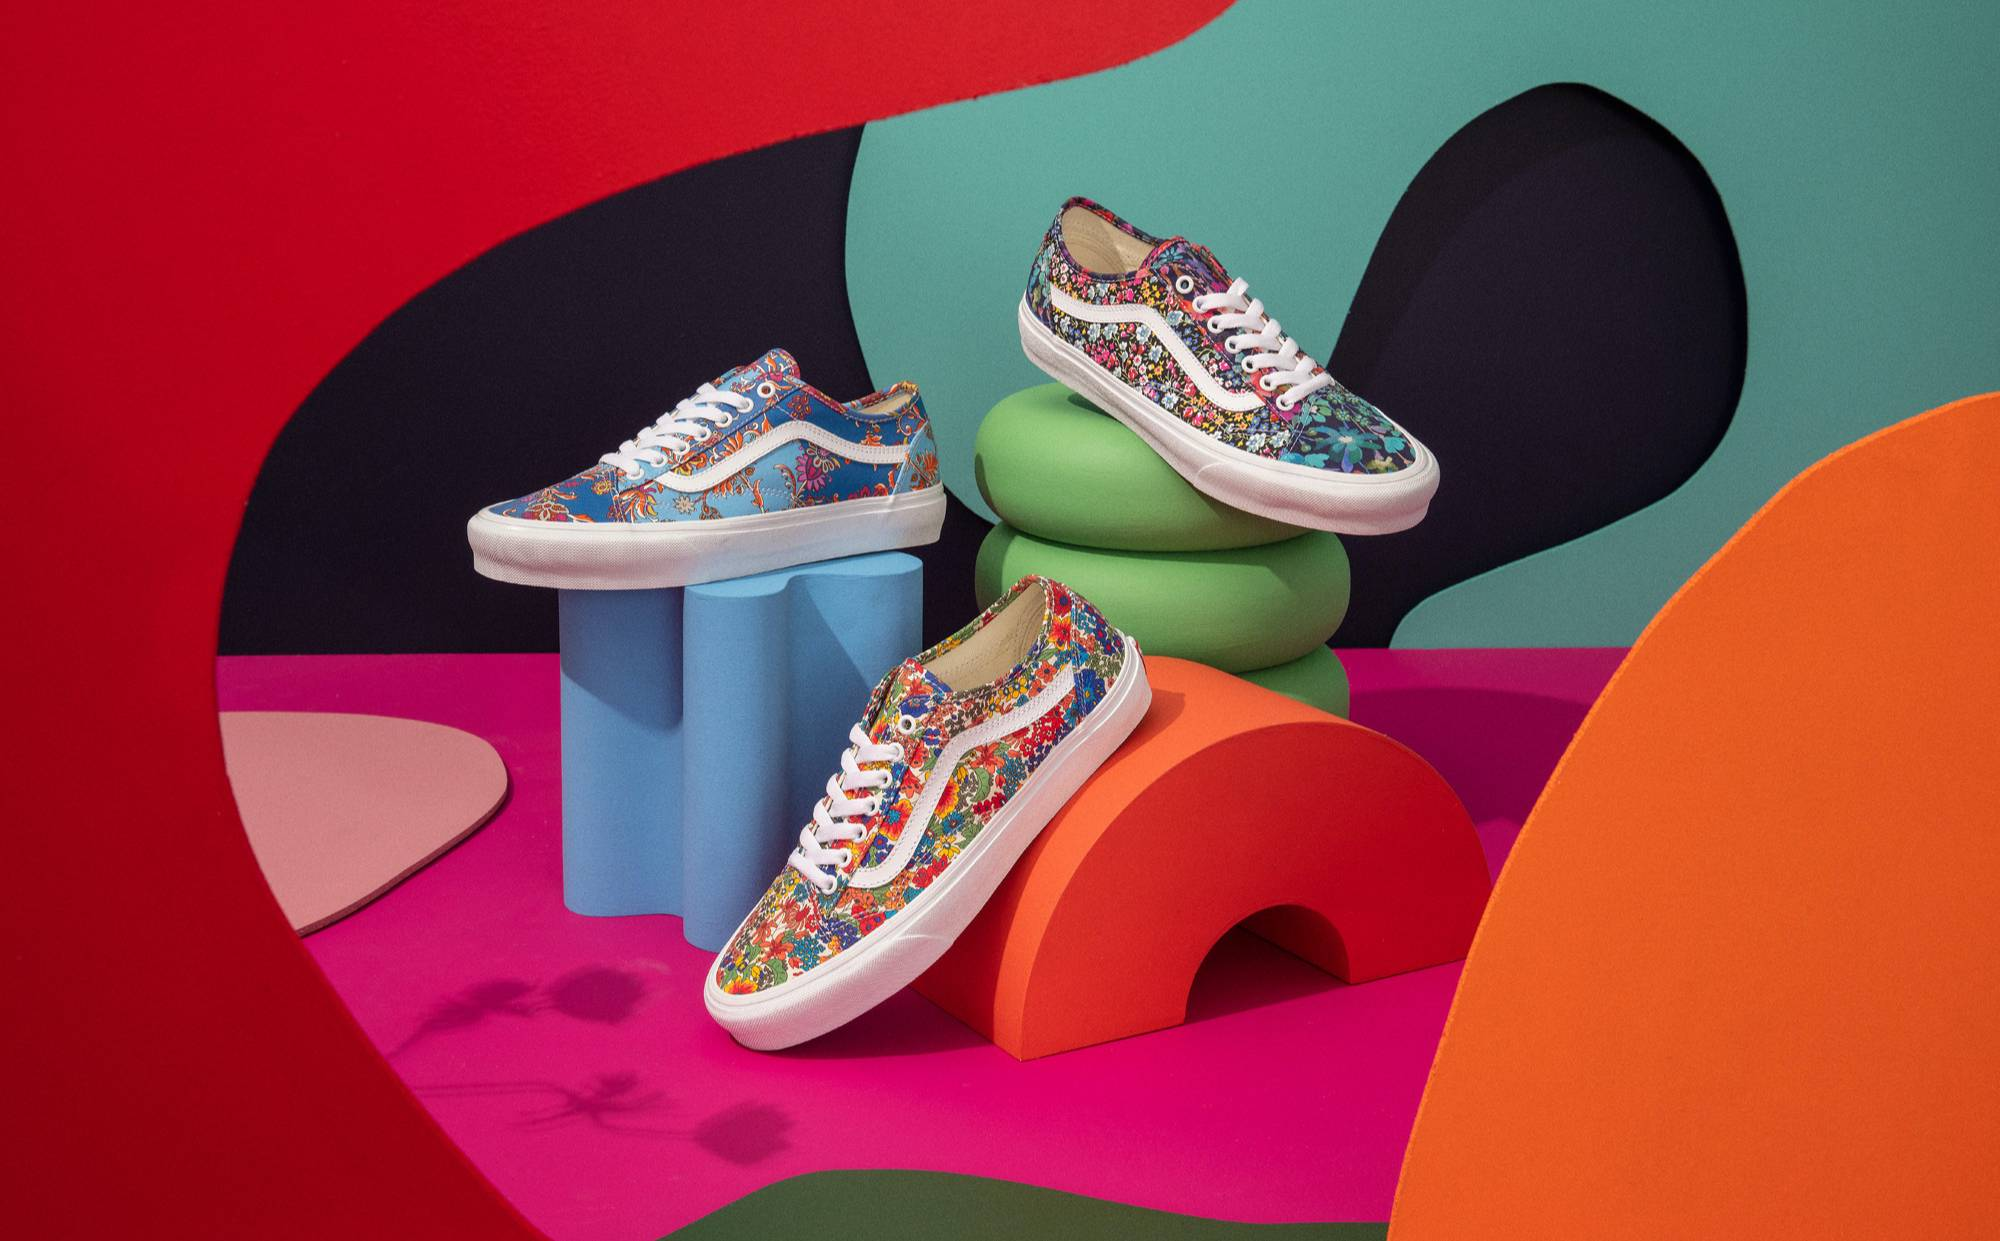 Vans launches collection made with Liberty of London fabrics